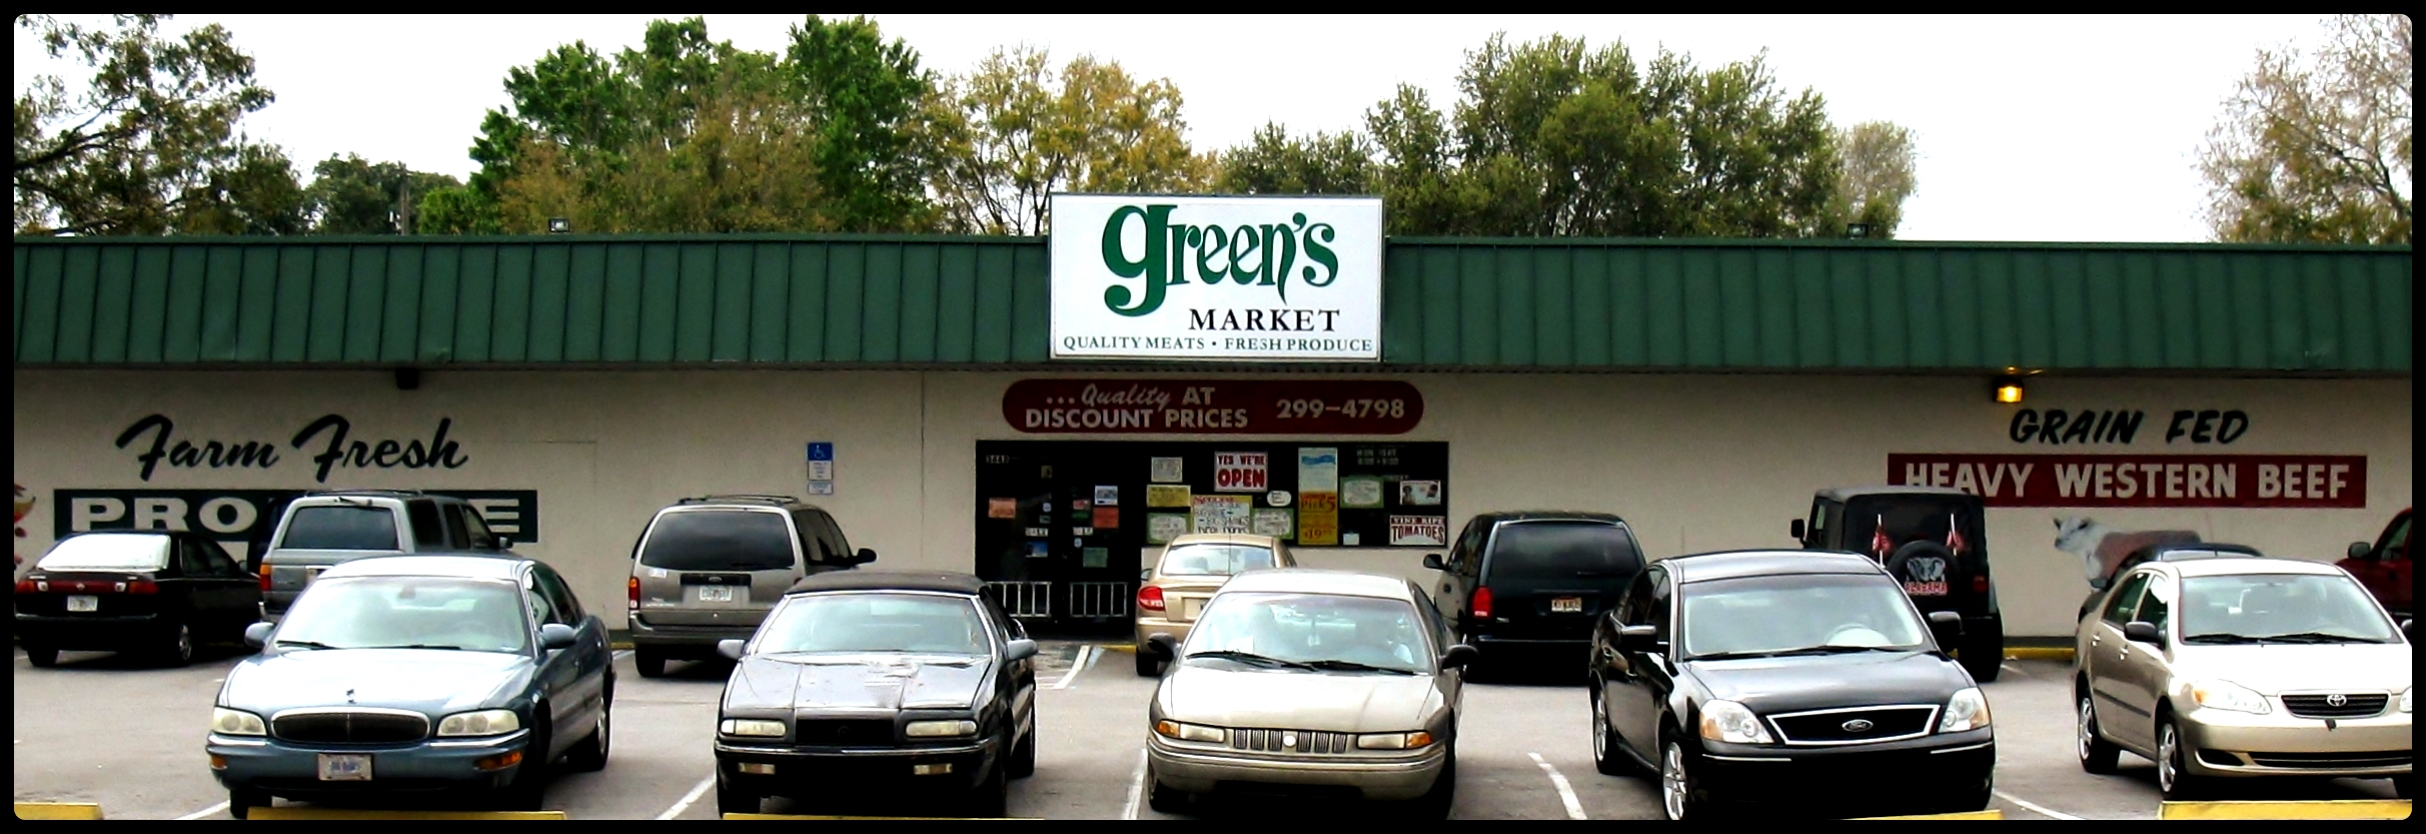 Green's Market - Home